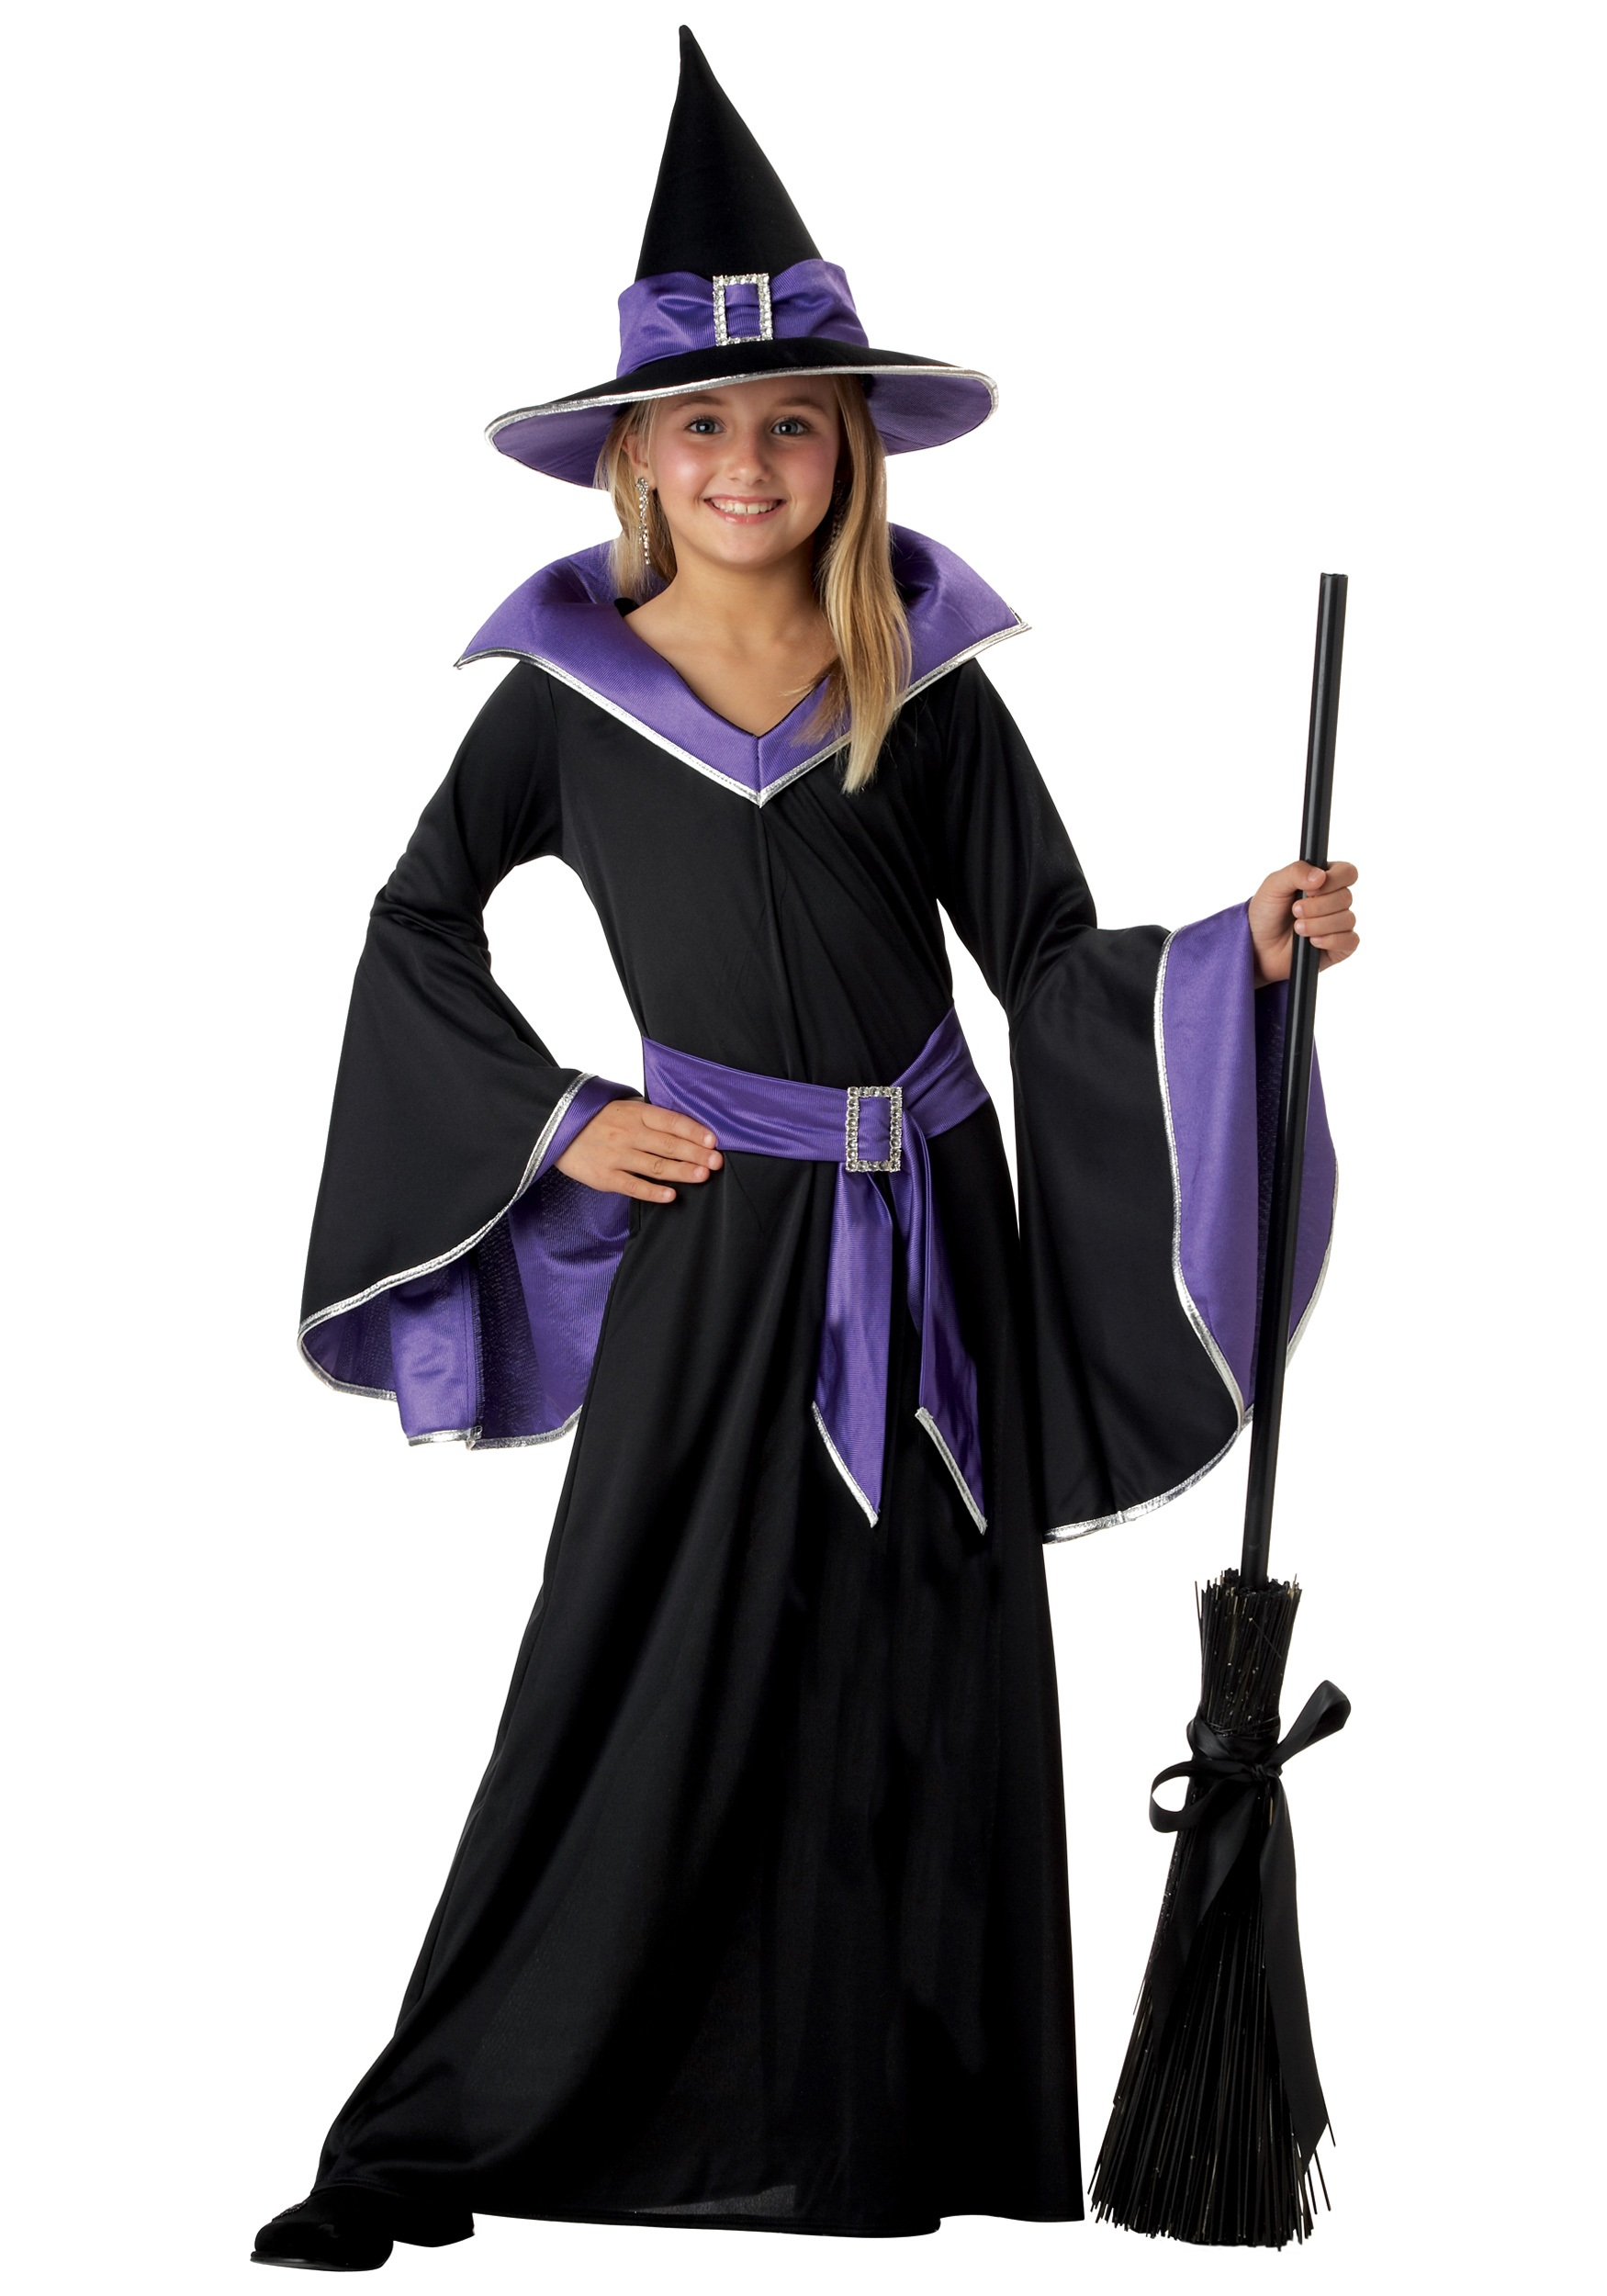 Yoda Woody Girl Witch ...  sc 1 th 268 & 1000u0027s of costumes. Both retail and theatrical quality rental ...